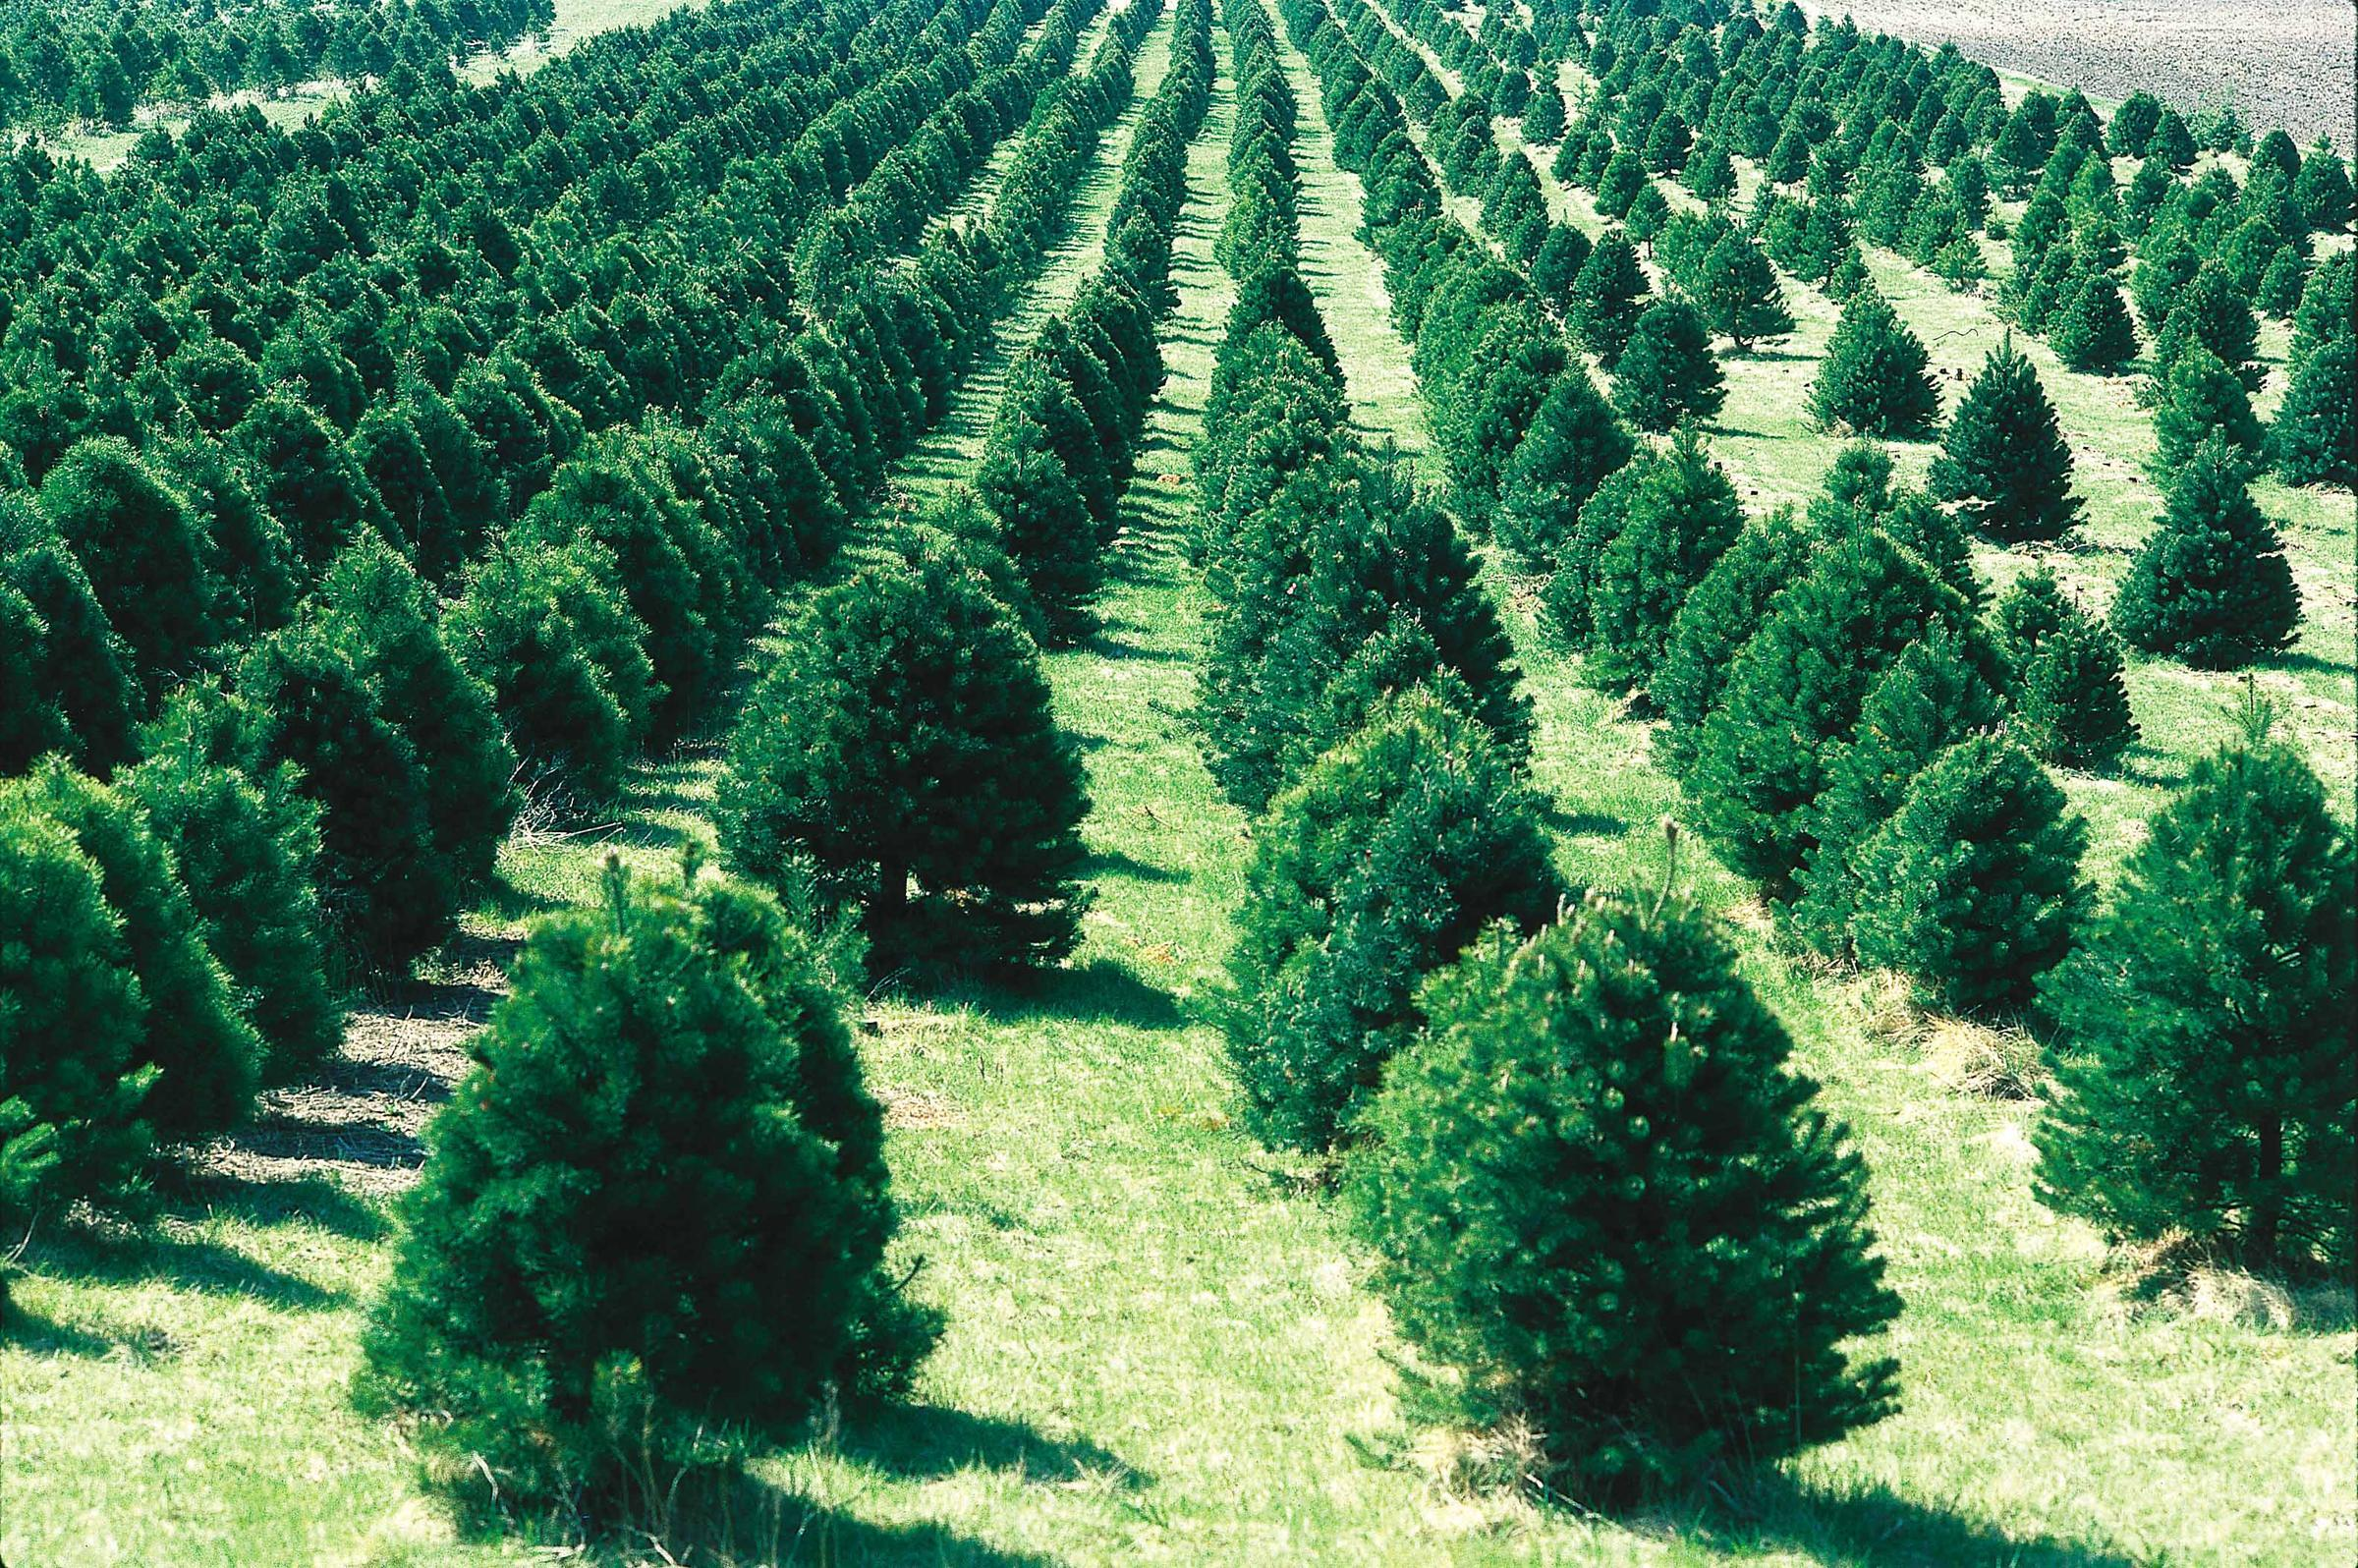 christmas is over time to recycle those trees theyre turned into mulch - Christmas Tree Wiki